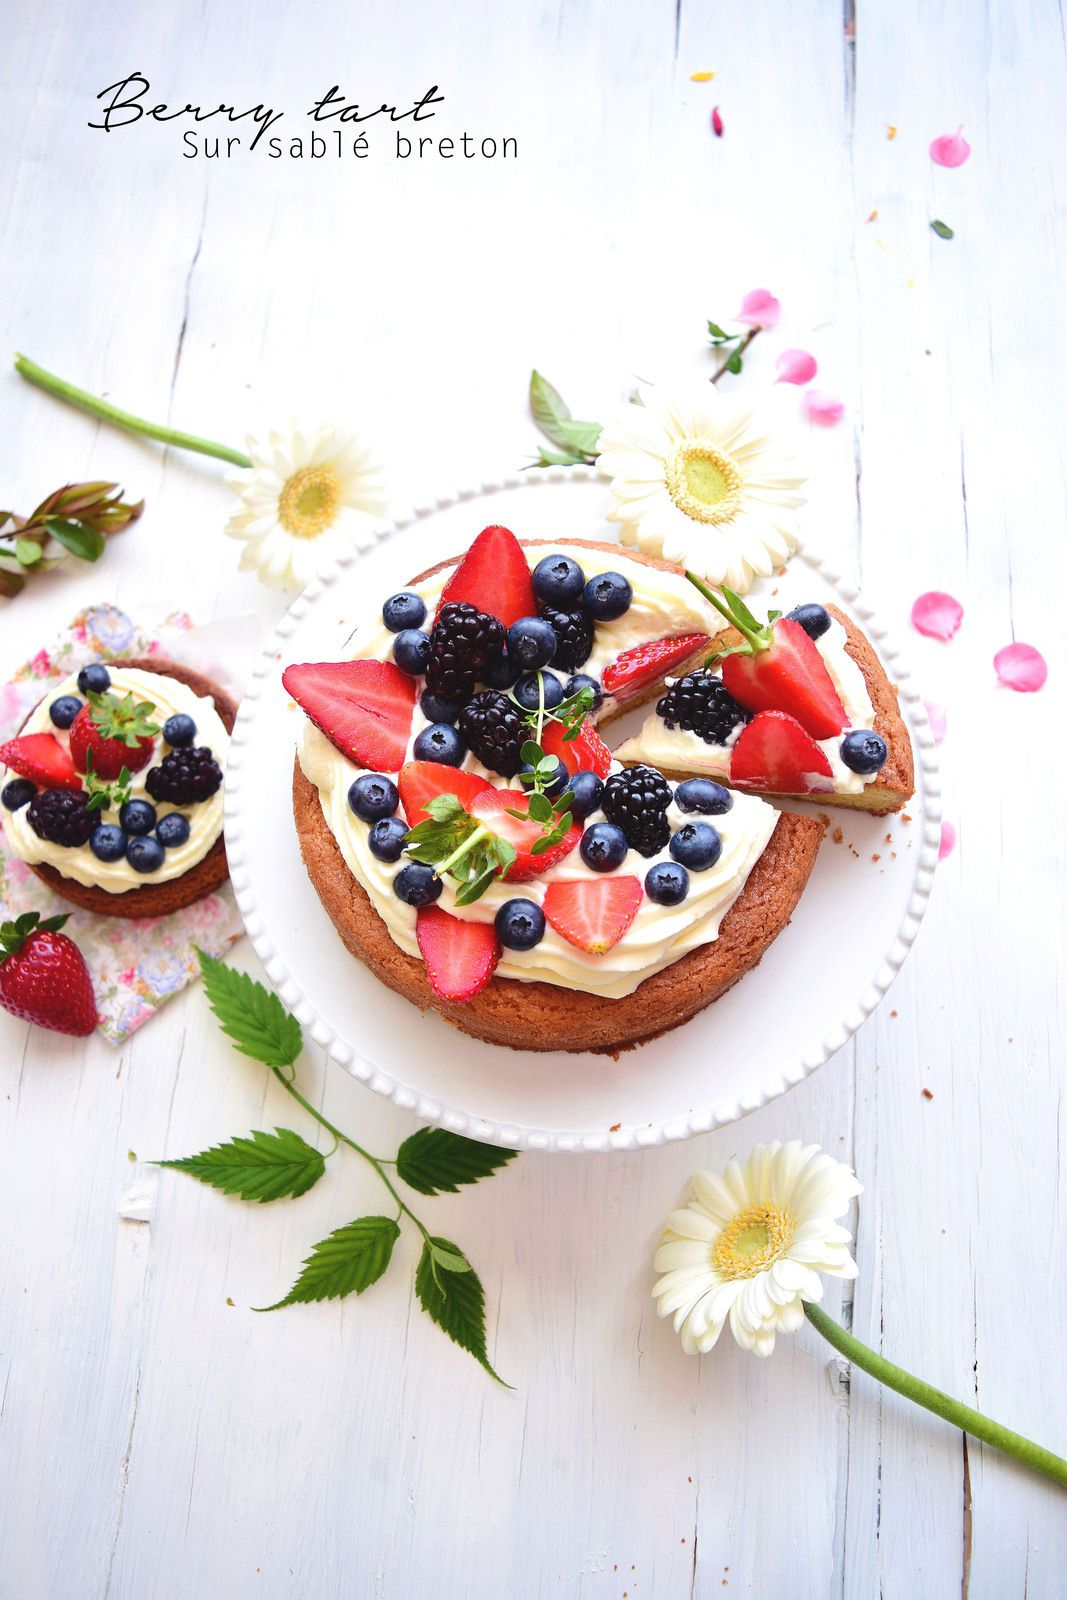 Tarte aux fruits rouges, chocolat blanc & sablé breton